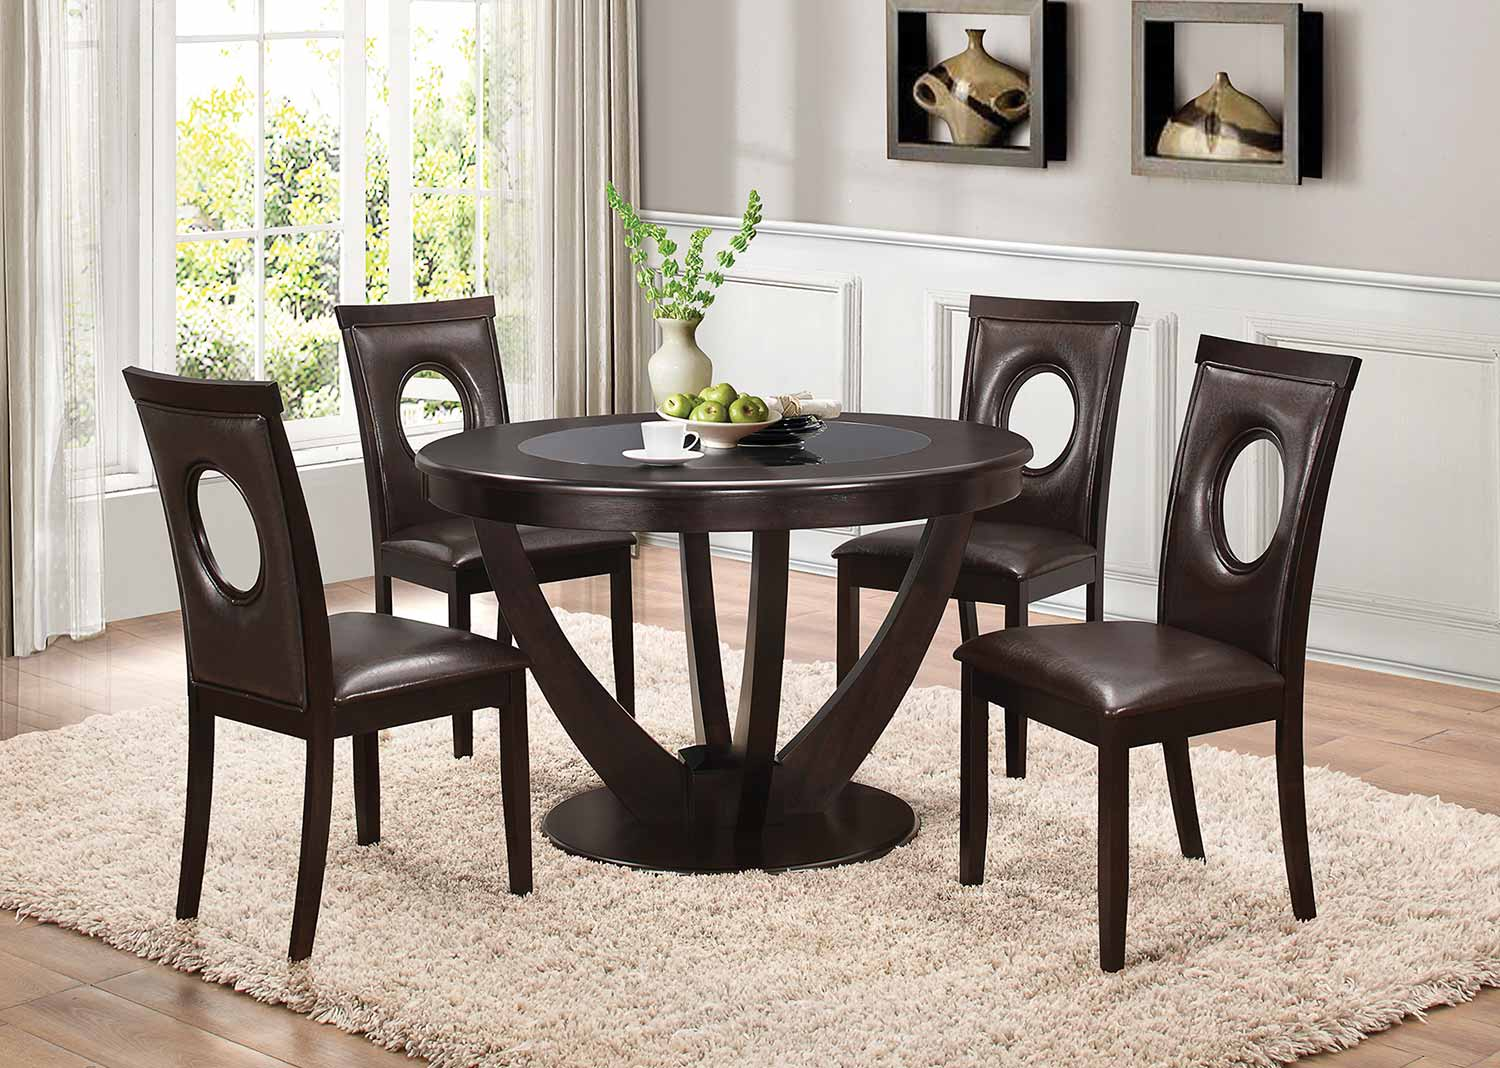 Coaster Stapleton Round Glass Dining Set - Cappuccino